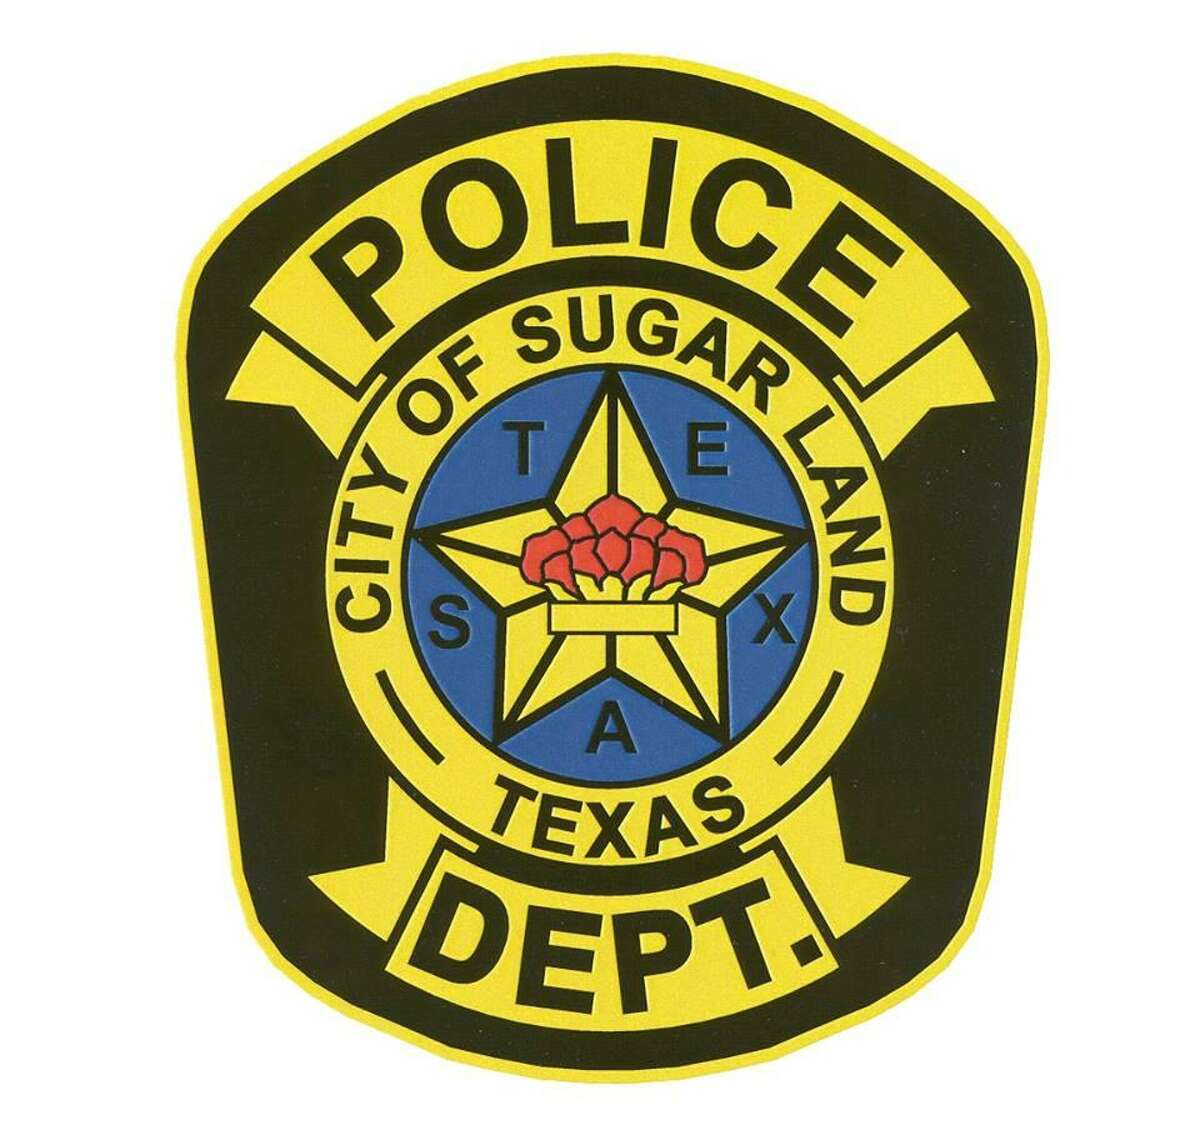 Sugar Land Police Department Total stops: 40,596 Stops with use of force: 9 Use of force rate per 10,000 stops: 2.22 (Rates calculated by Grits for Breakfast)